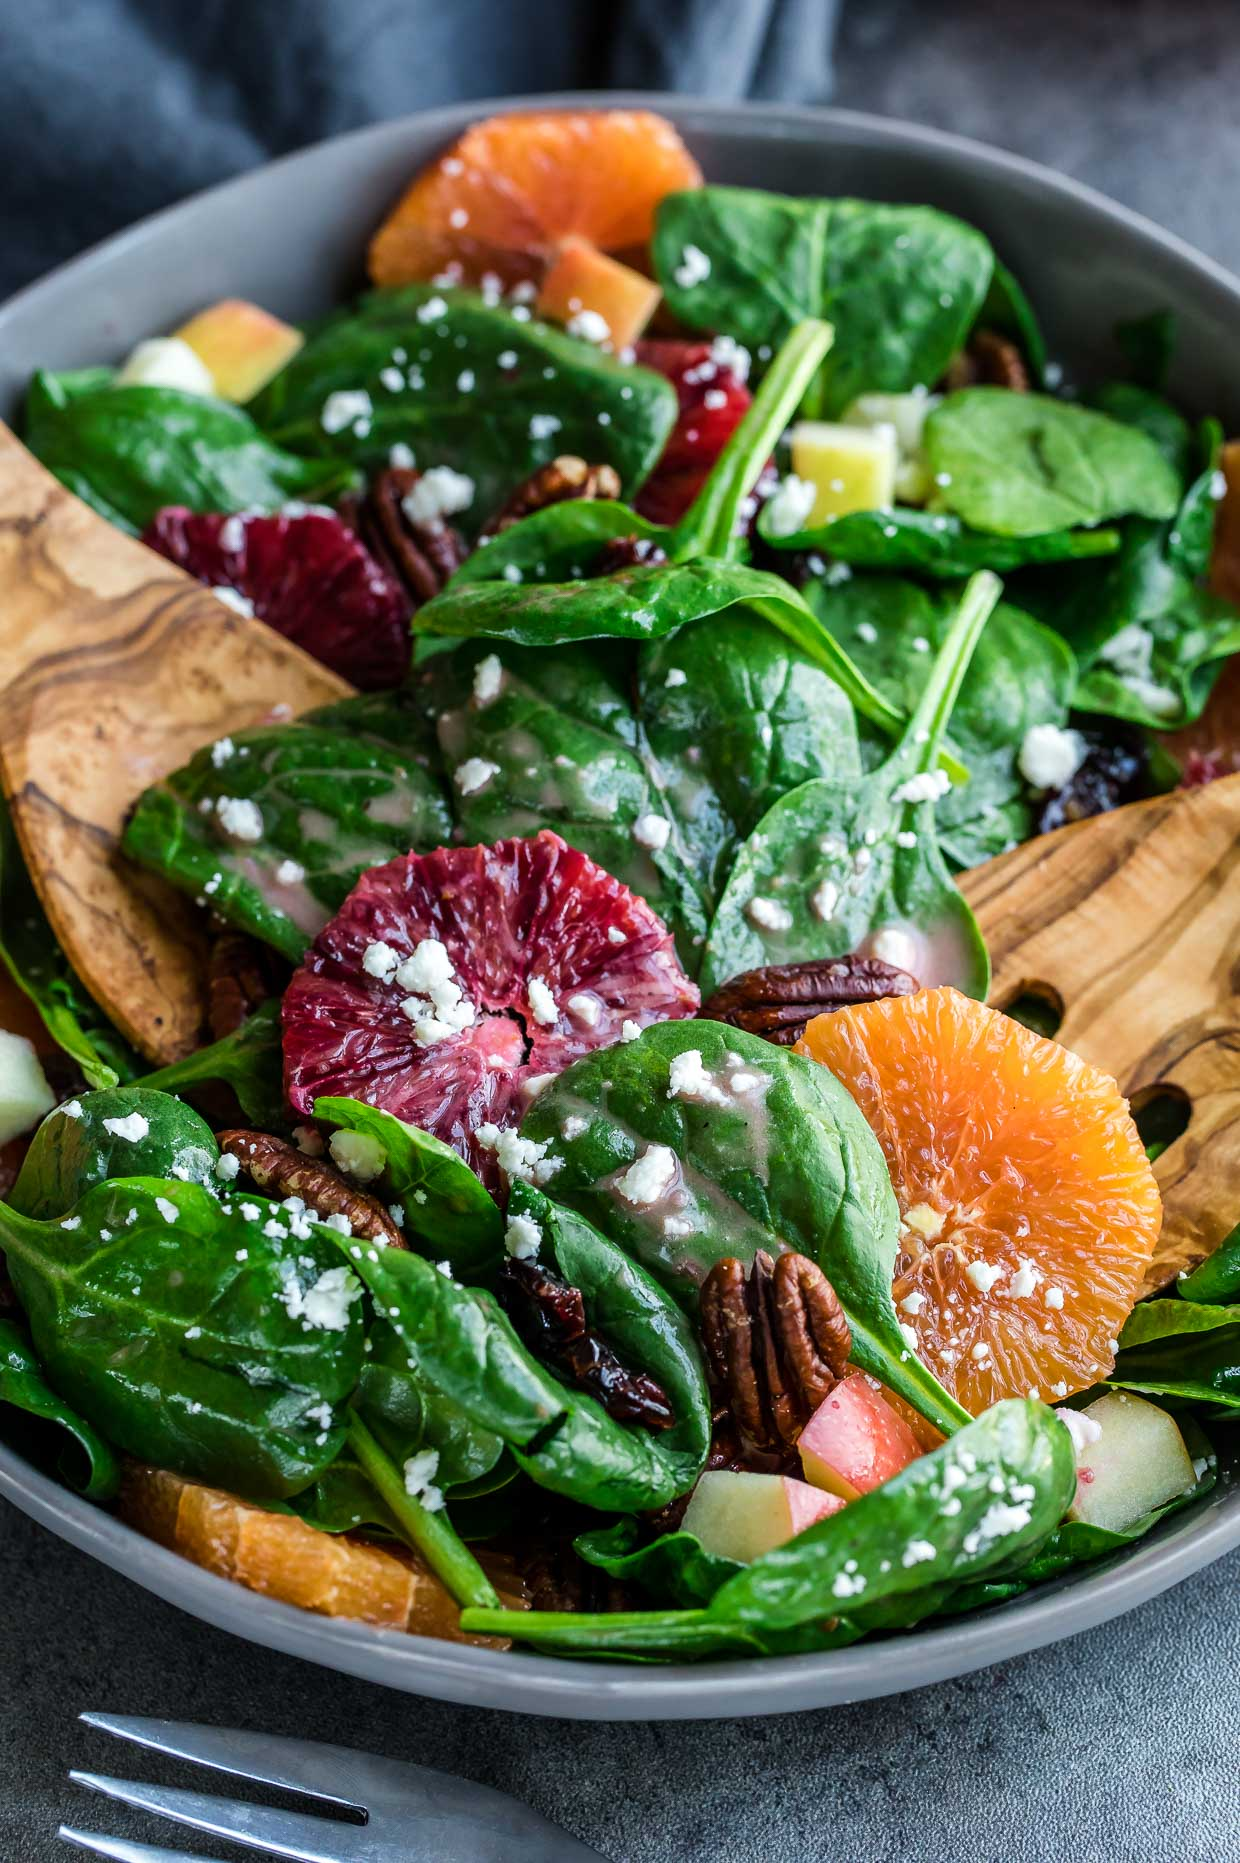 Apple Citrus Spinach Salad with Blood Orange Dressing